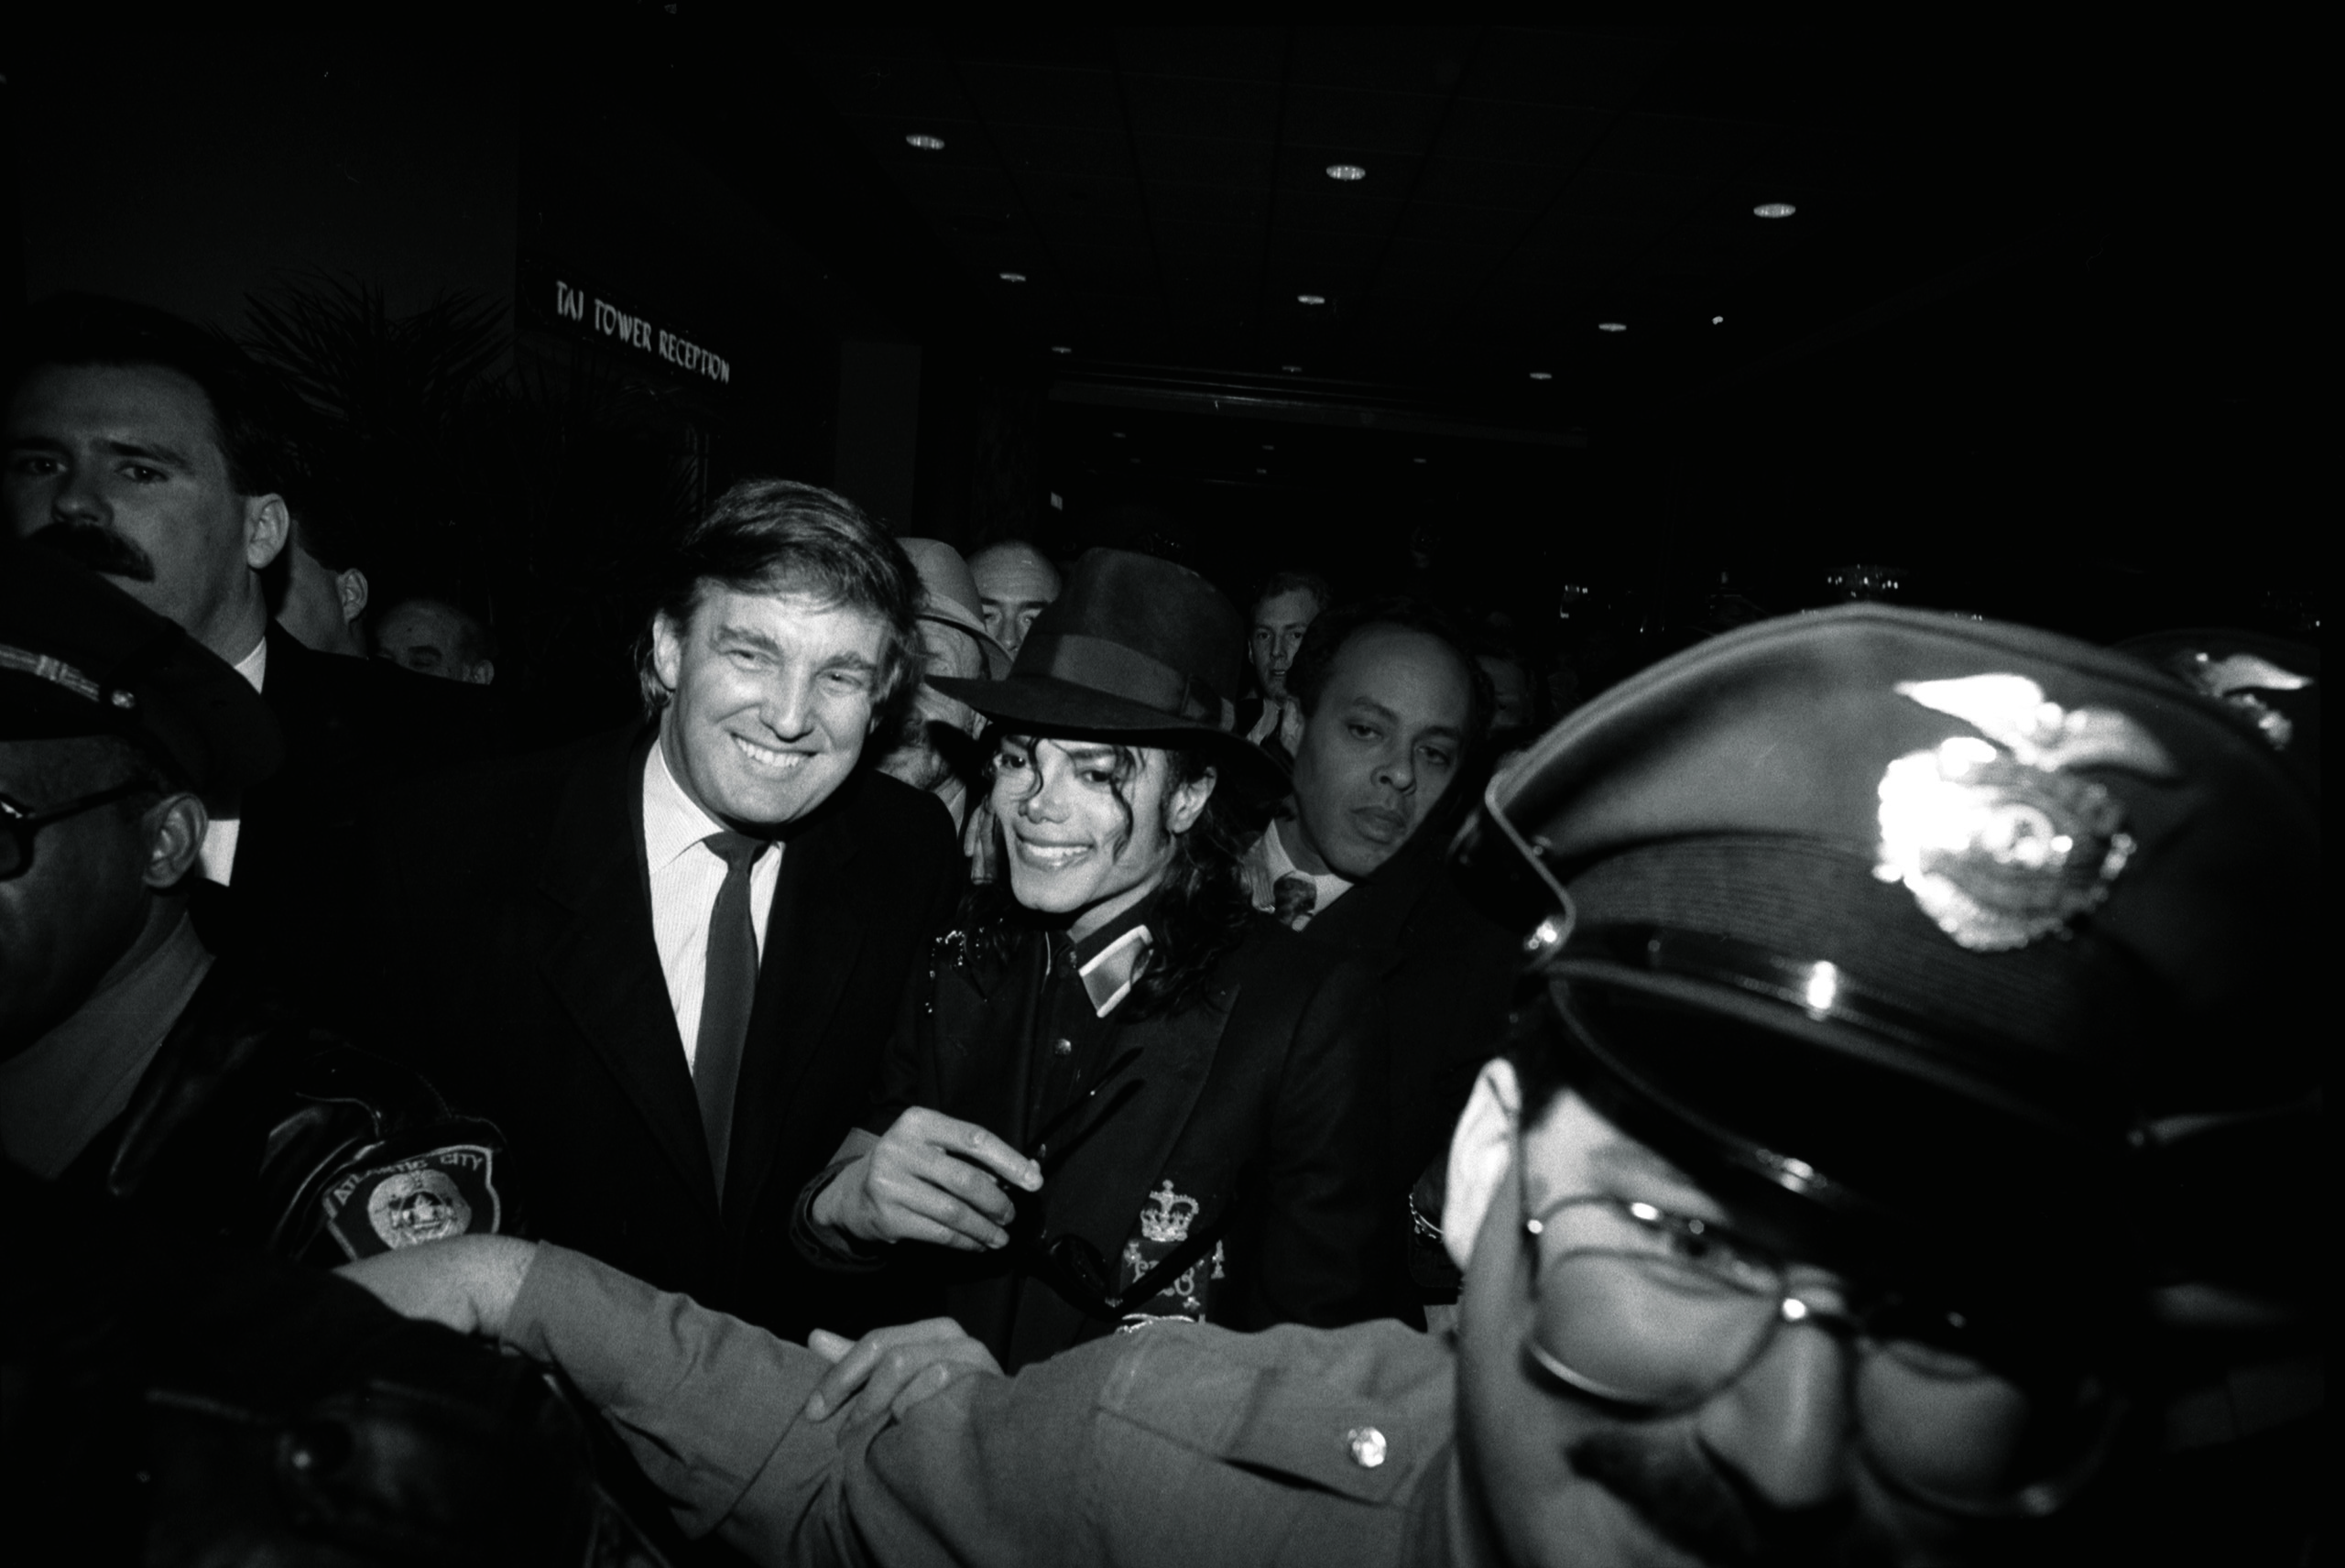 <b>1990</b> Trump and Michael Jackson, his guest, at the grand opening of the Trump Taj Mahal casino resort in Atlantic City.